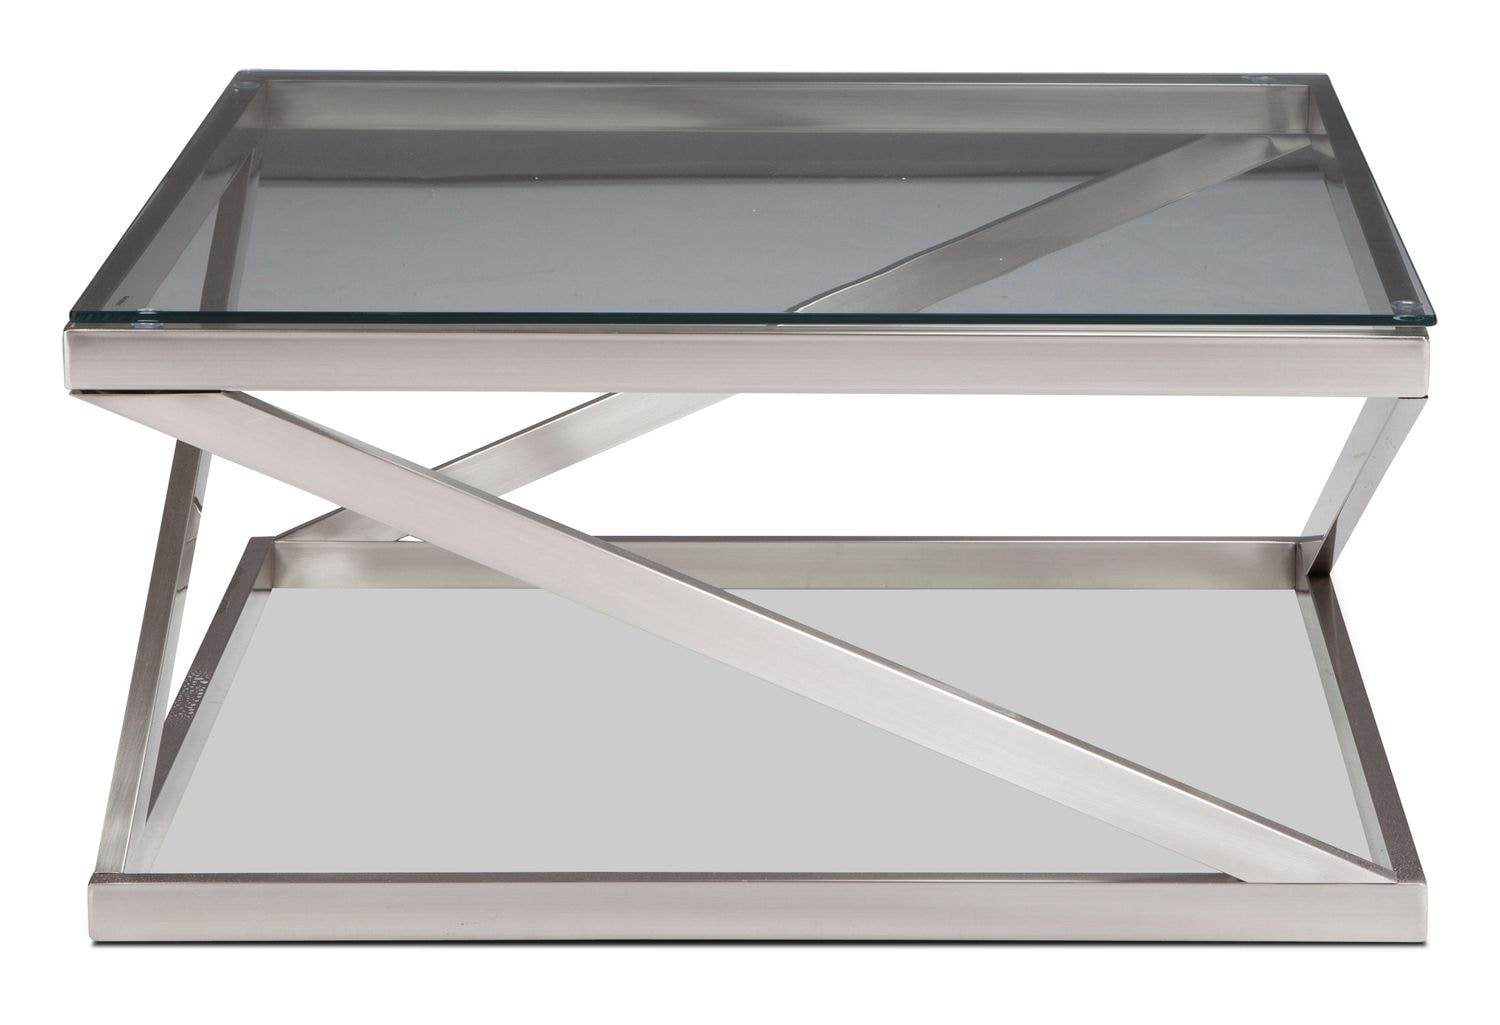 La Vista Coffee Table - Brushed Nickel